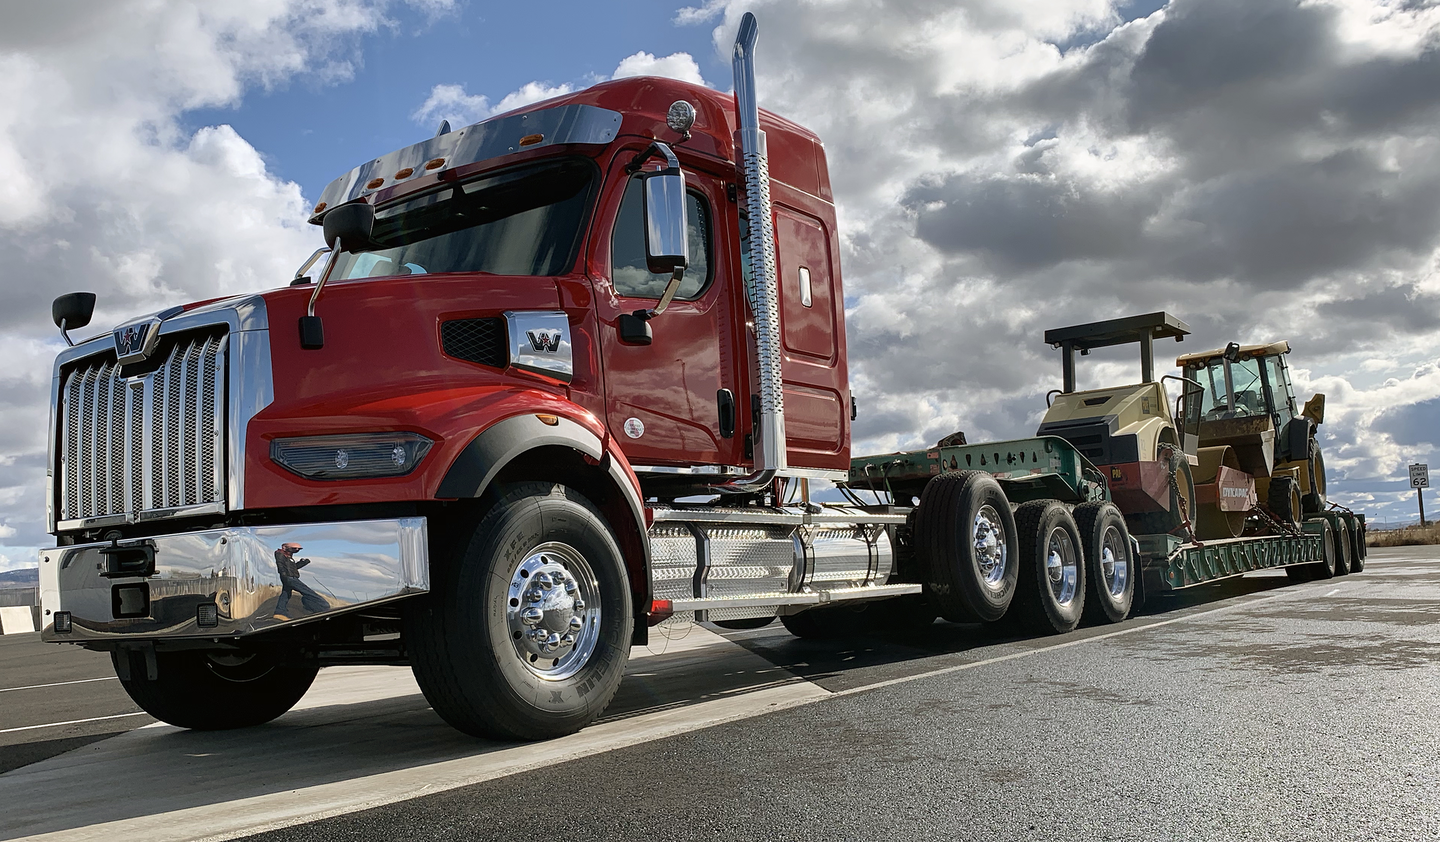 The 49X's heavy-duty vocational frame was designed for severe-service applications, but it weighs in about 350 pounds lighter than the current 4900.